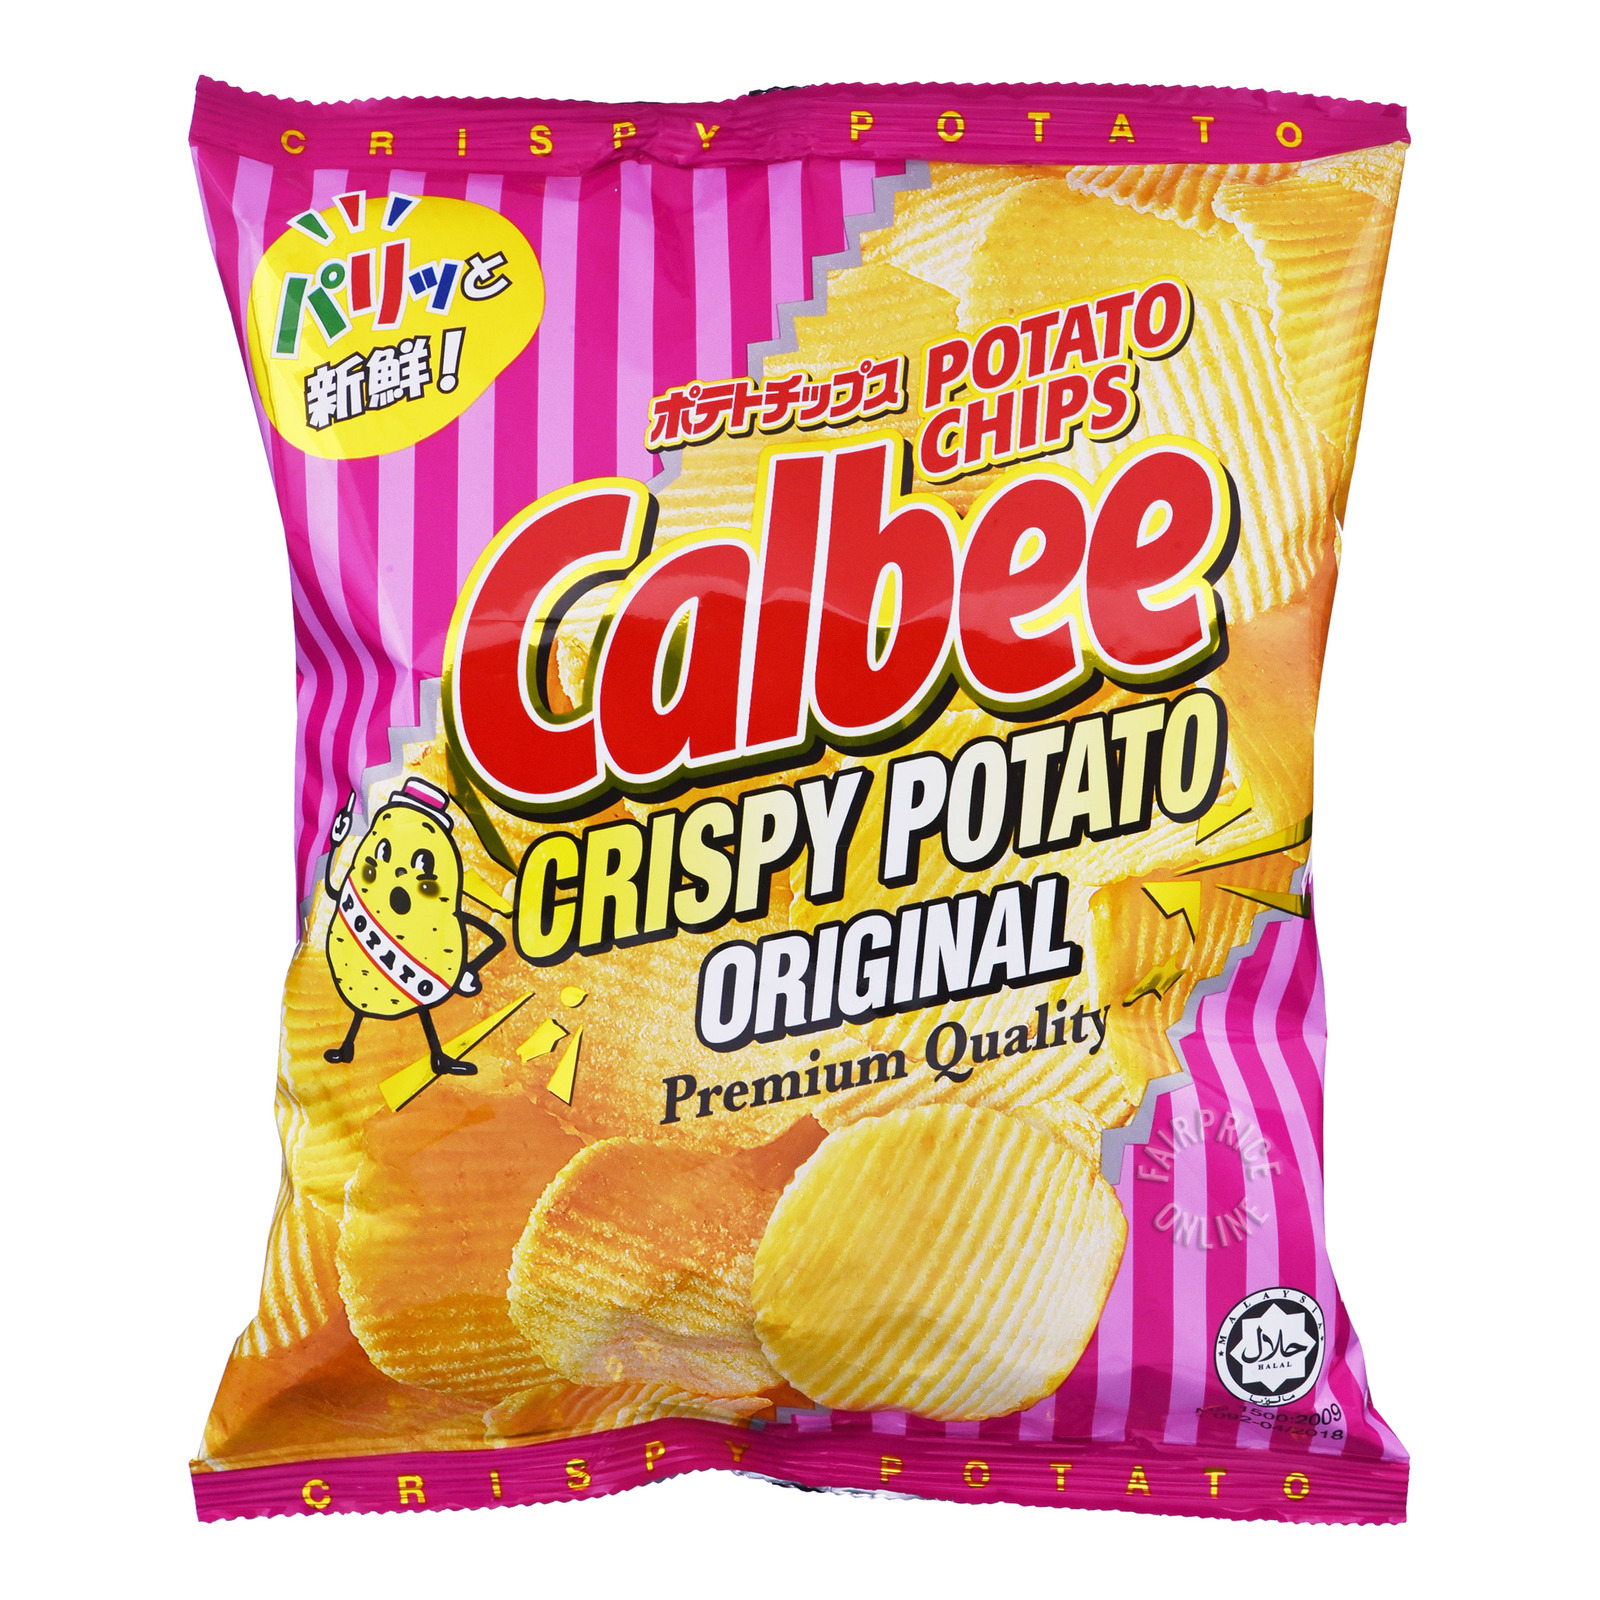 CALBEE Crispy Potato Original 80g